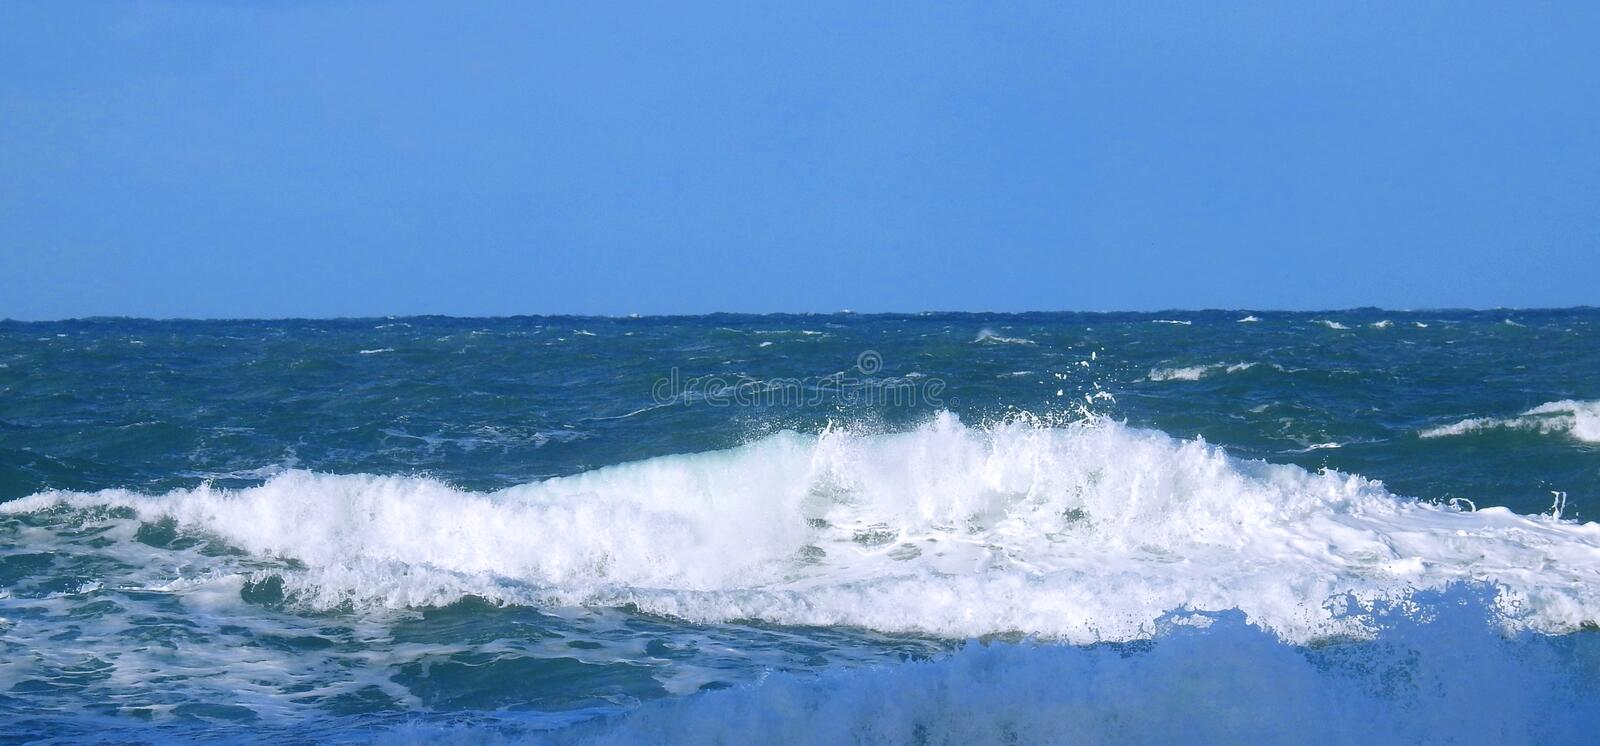 Close up view of an ocean wave with white foam stock image